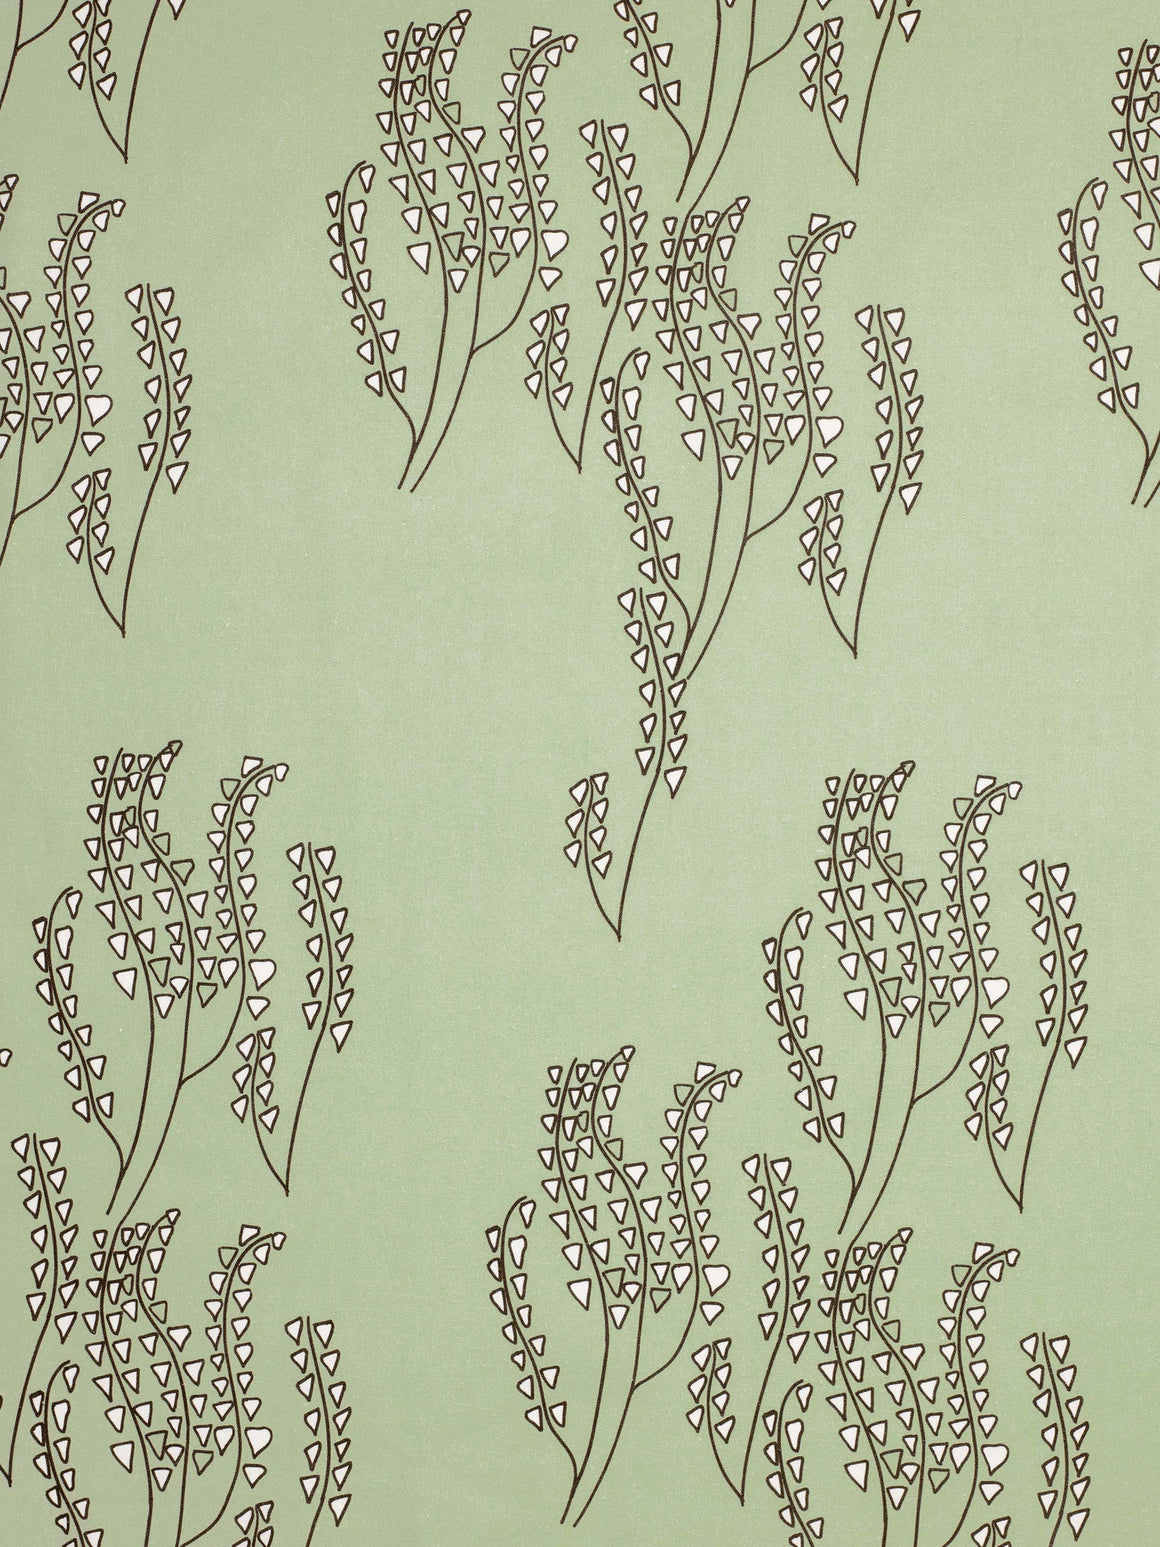 Yuma Graphic Grass Pattern Linen Cotton Canvas Home Interior Decor Fabric by the meter or yard for curtain, blinds or upholstery - Eau de Nil Green - grey - ships from Canada (USA)